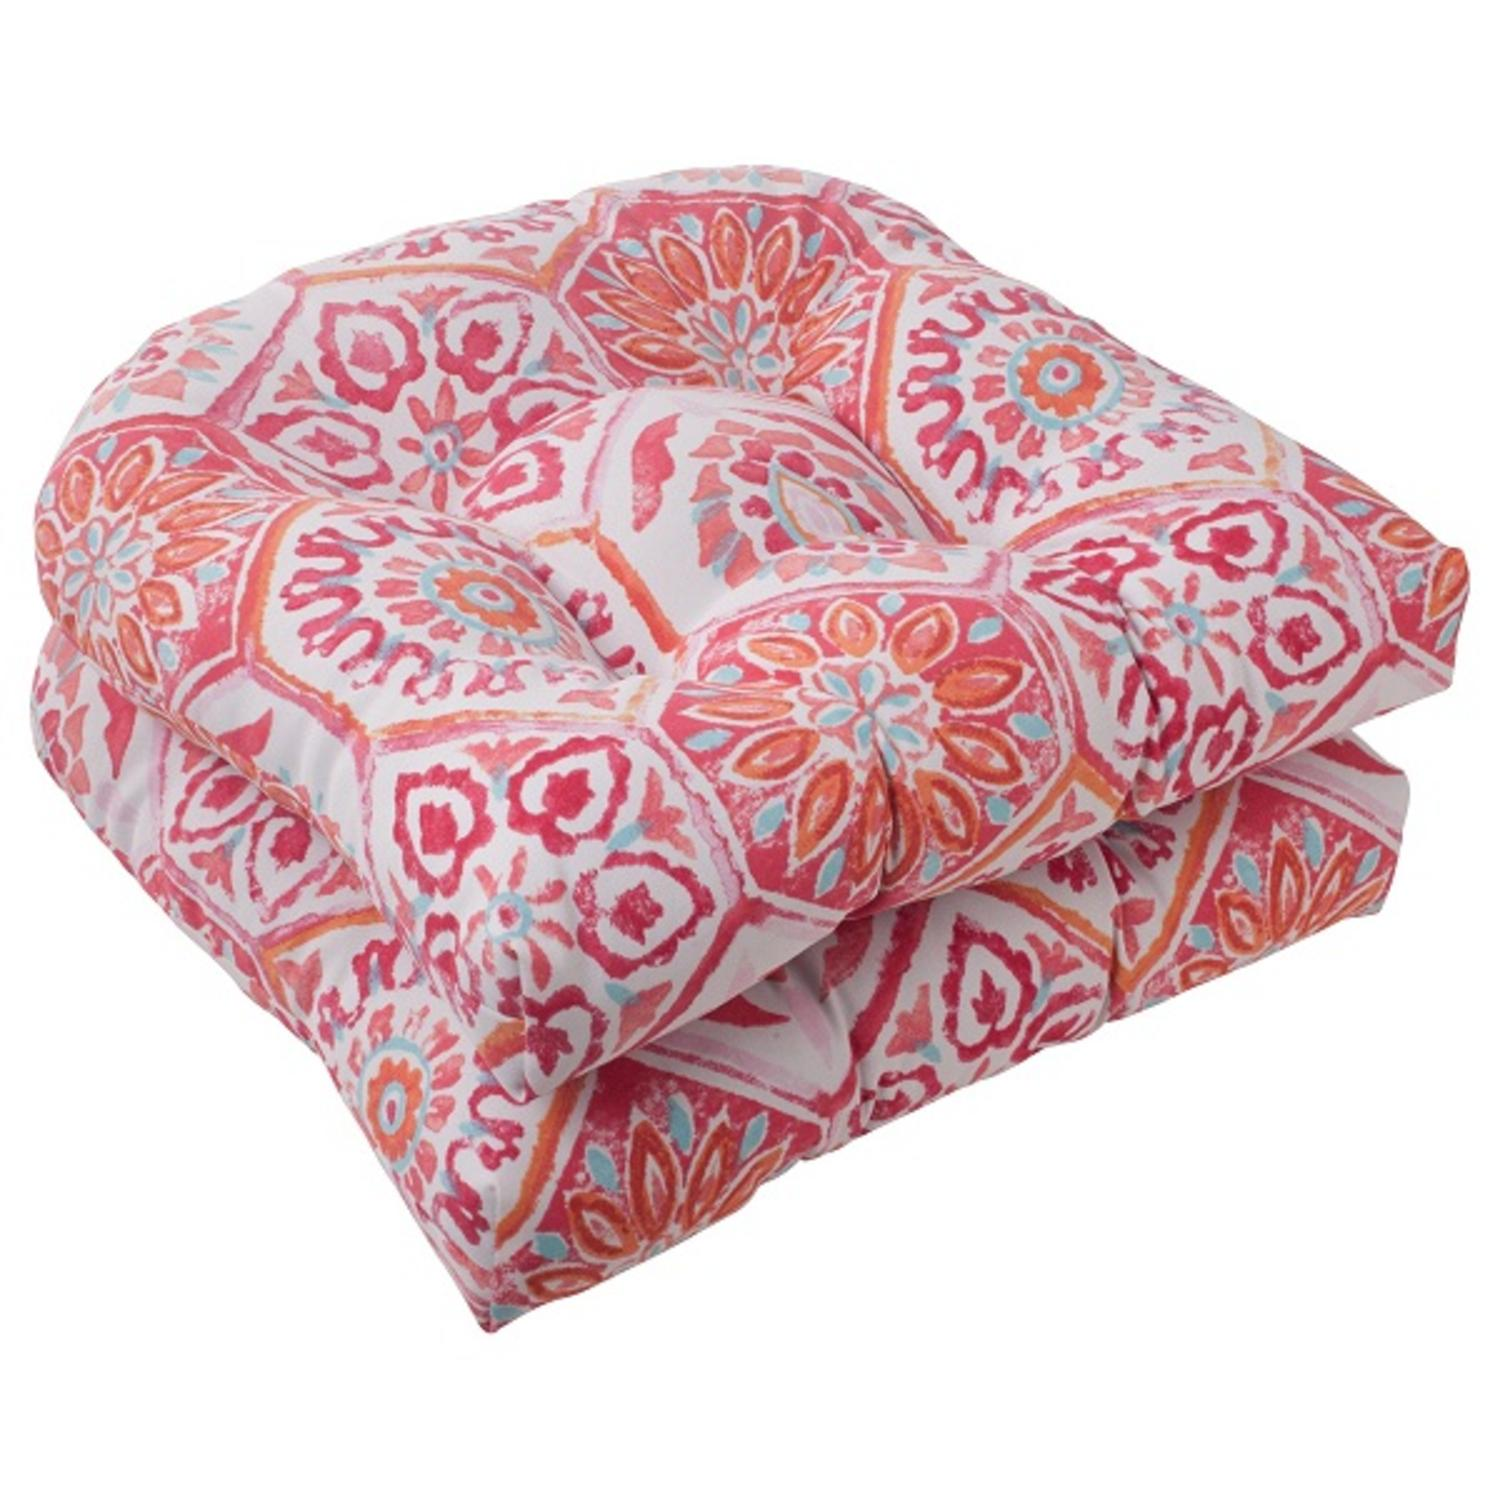 Set of 2 Pink Psychedelic Kaleidoscopic Outdoor Patio Seat Cushions 19